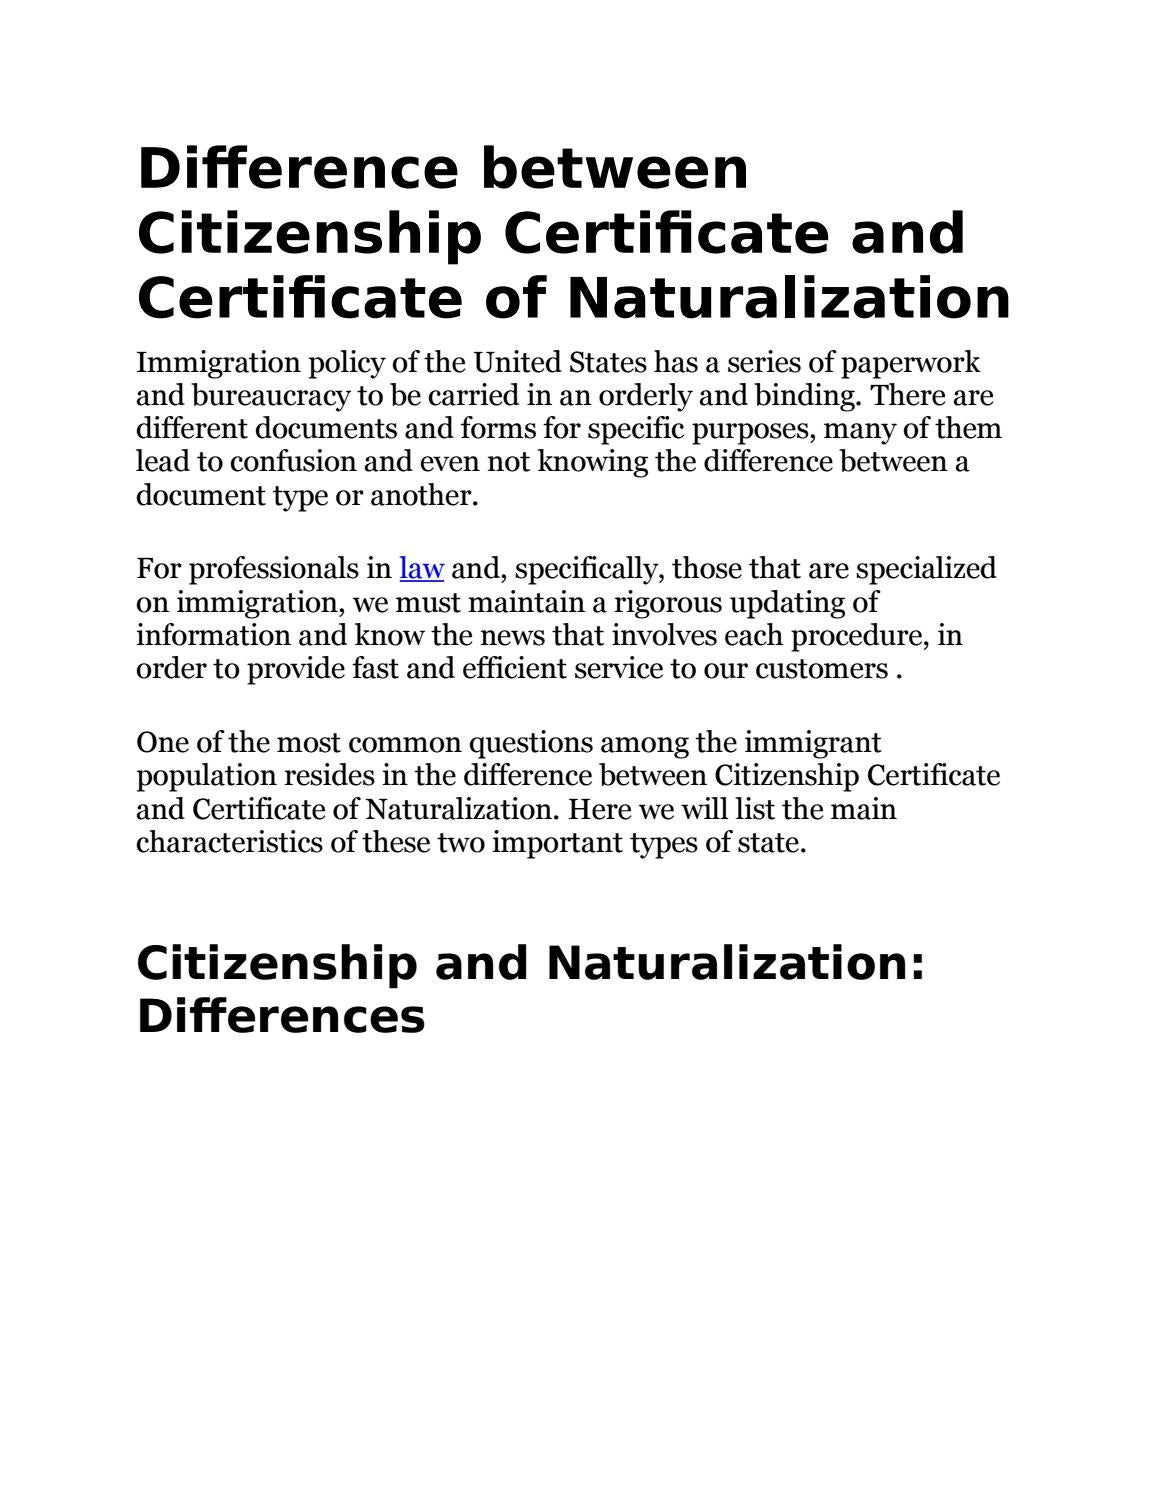 Difference Between Citizenship Certificate And Certificate Of